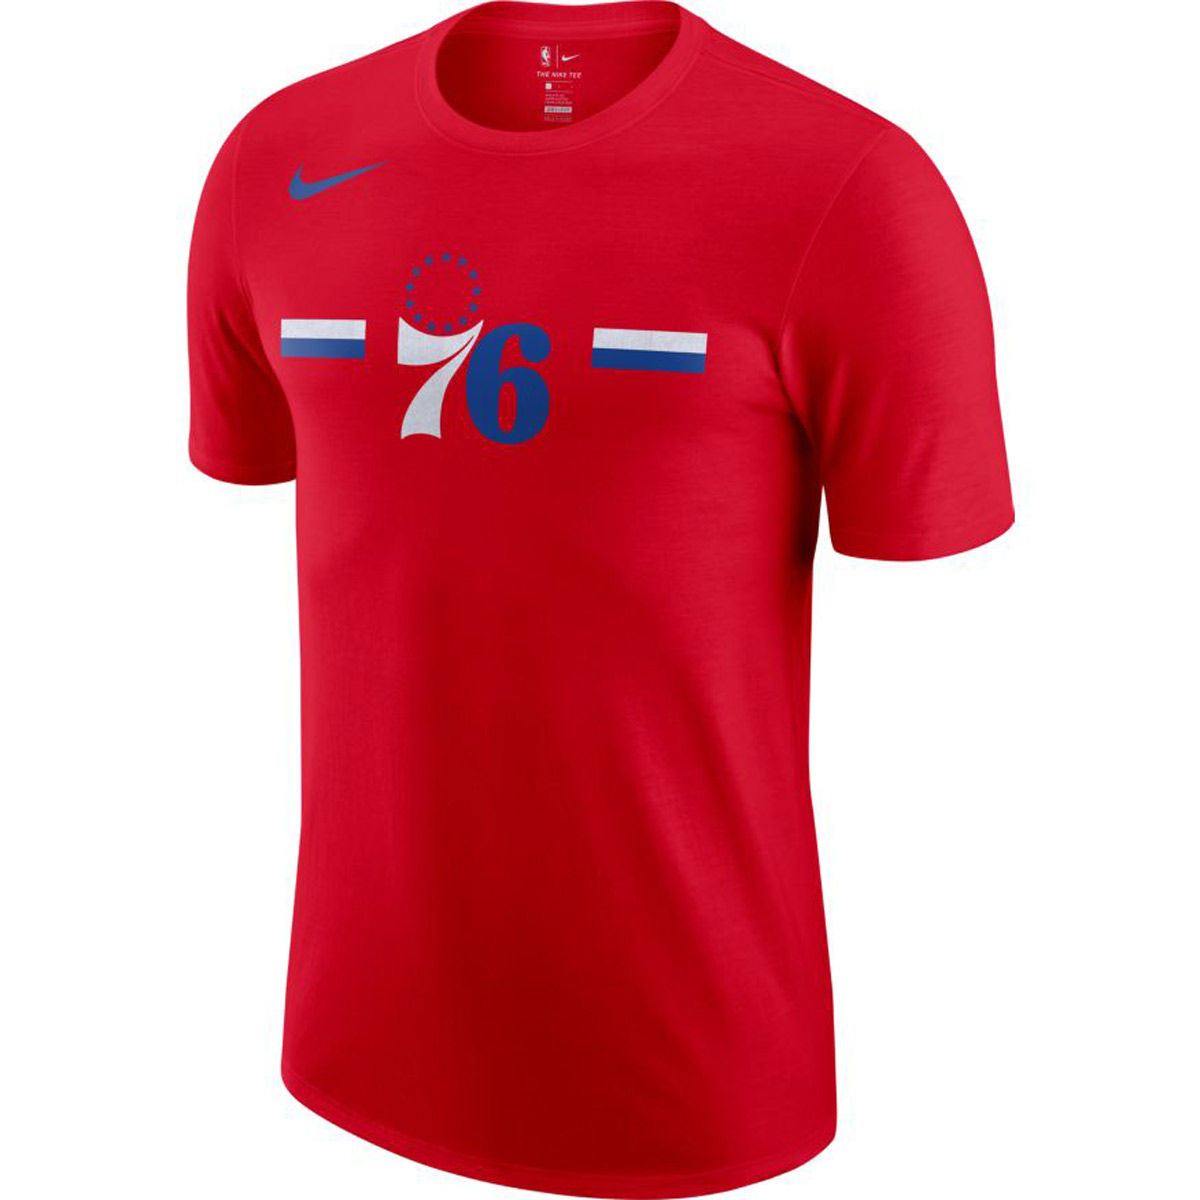 Philadelphia 76ers Adult Logo T-Shirt